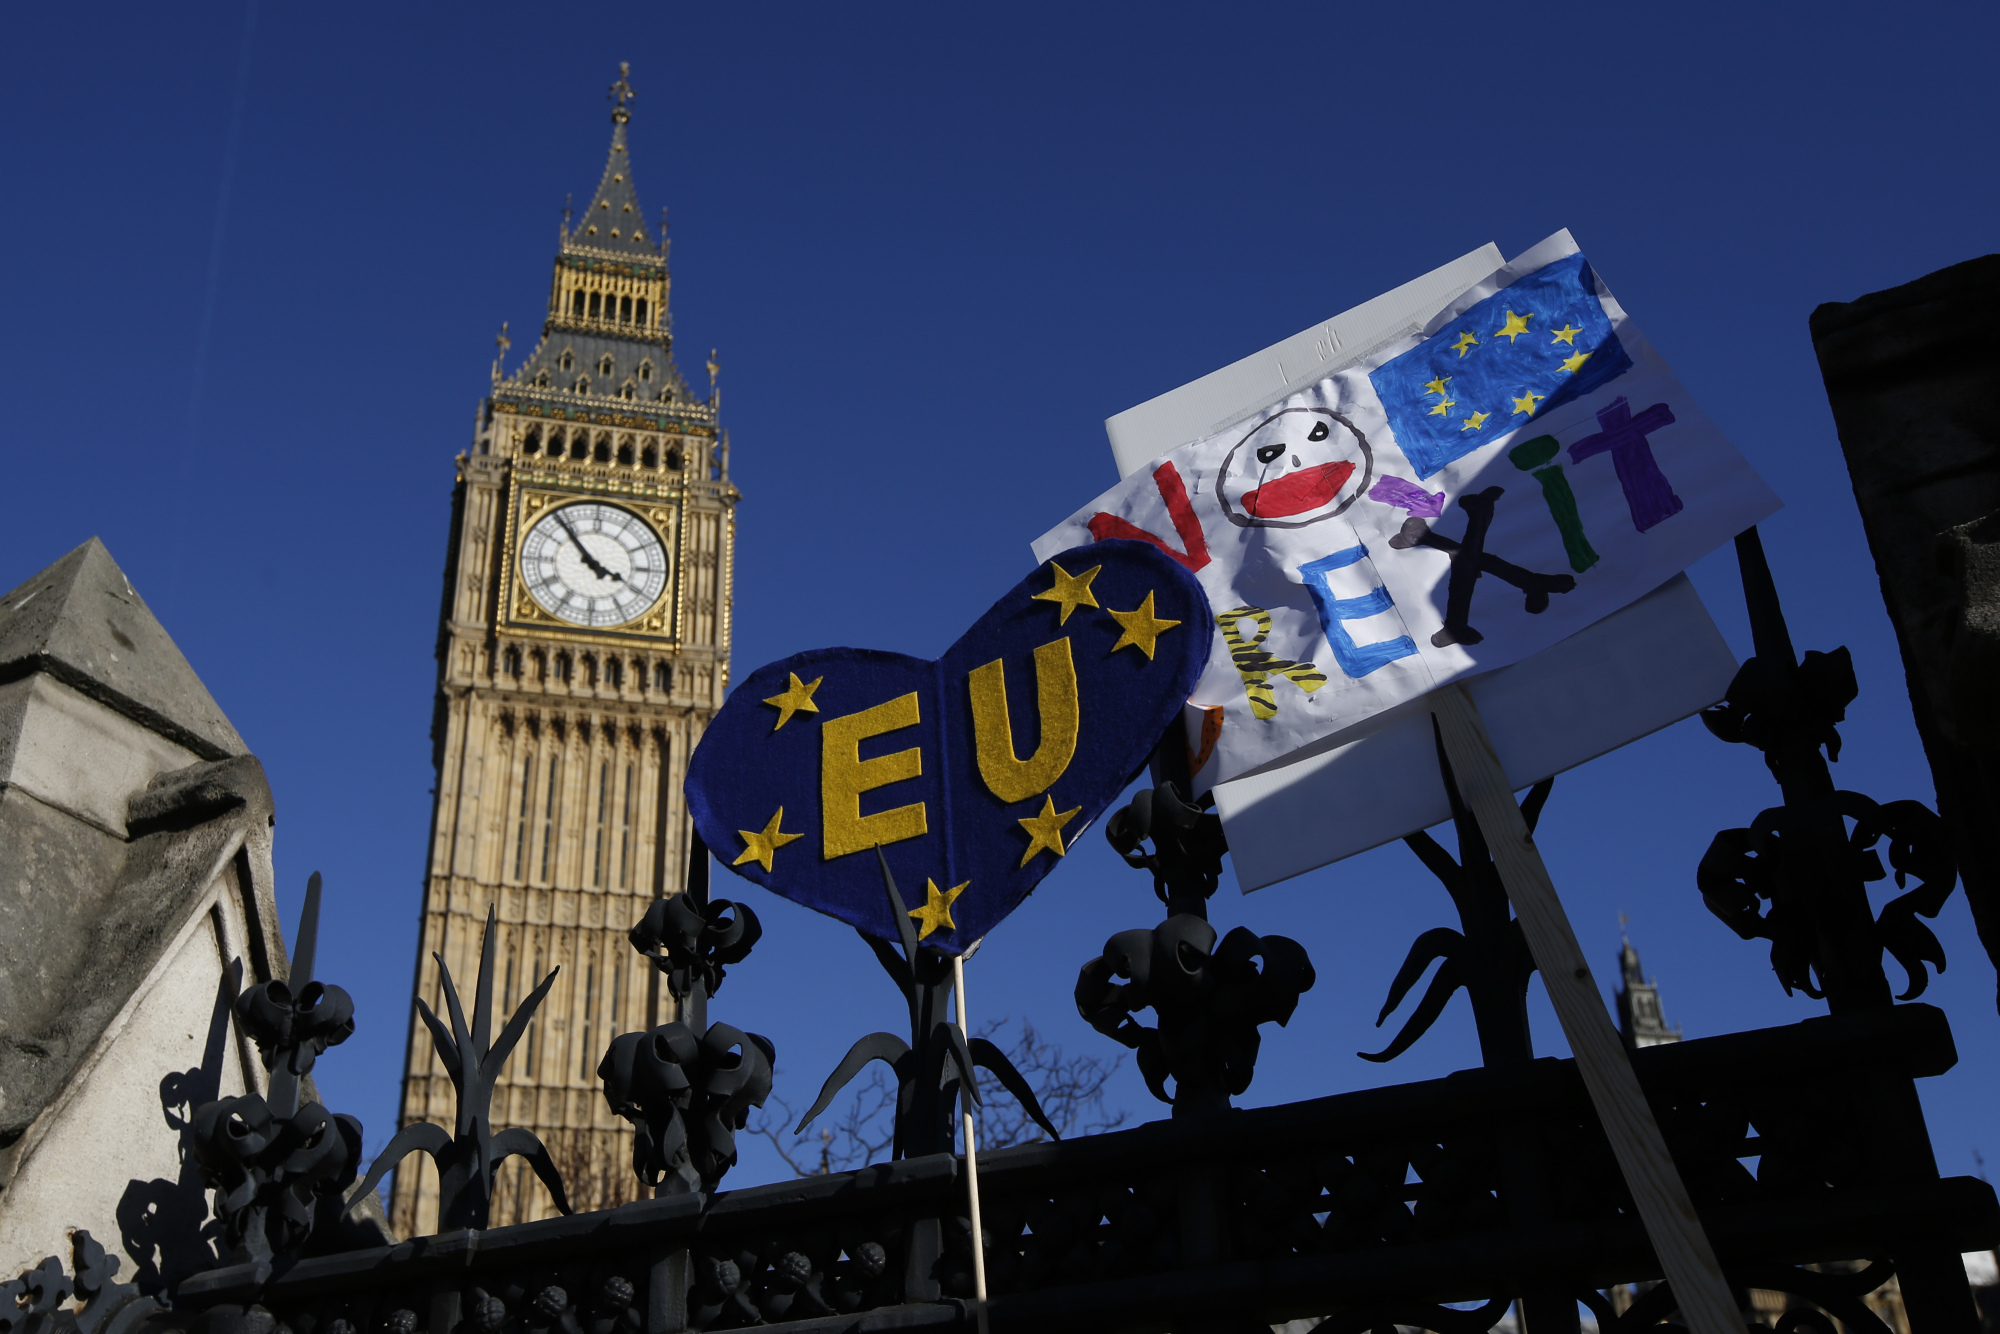 Pro-EU slogans and banners rest on the perimeter fence of the Houses of Parliament